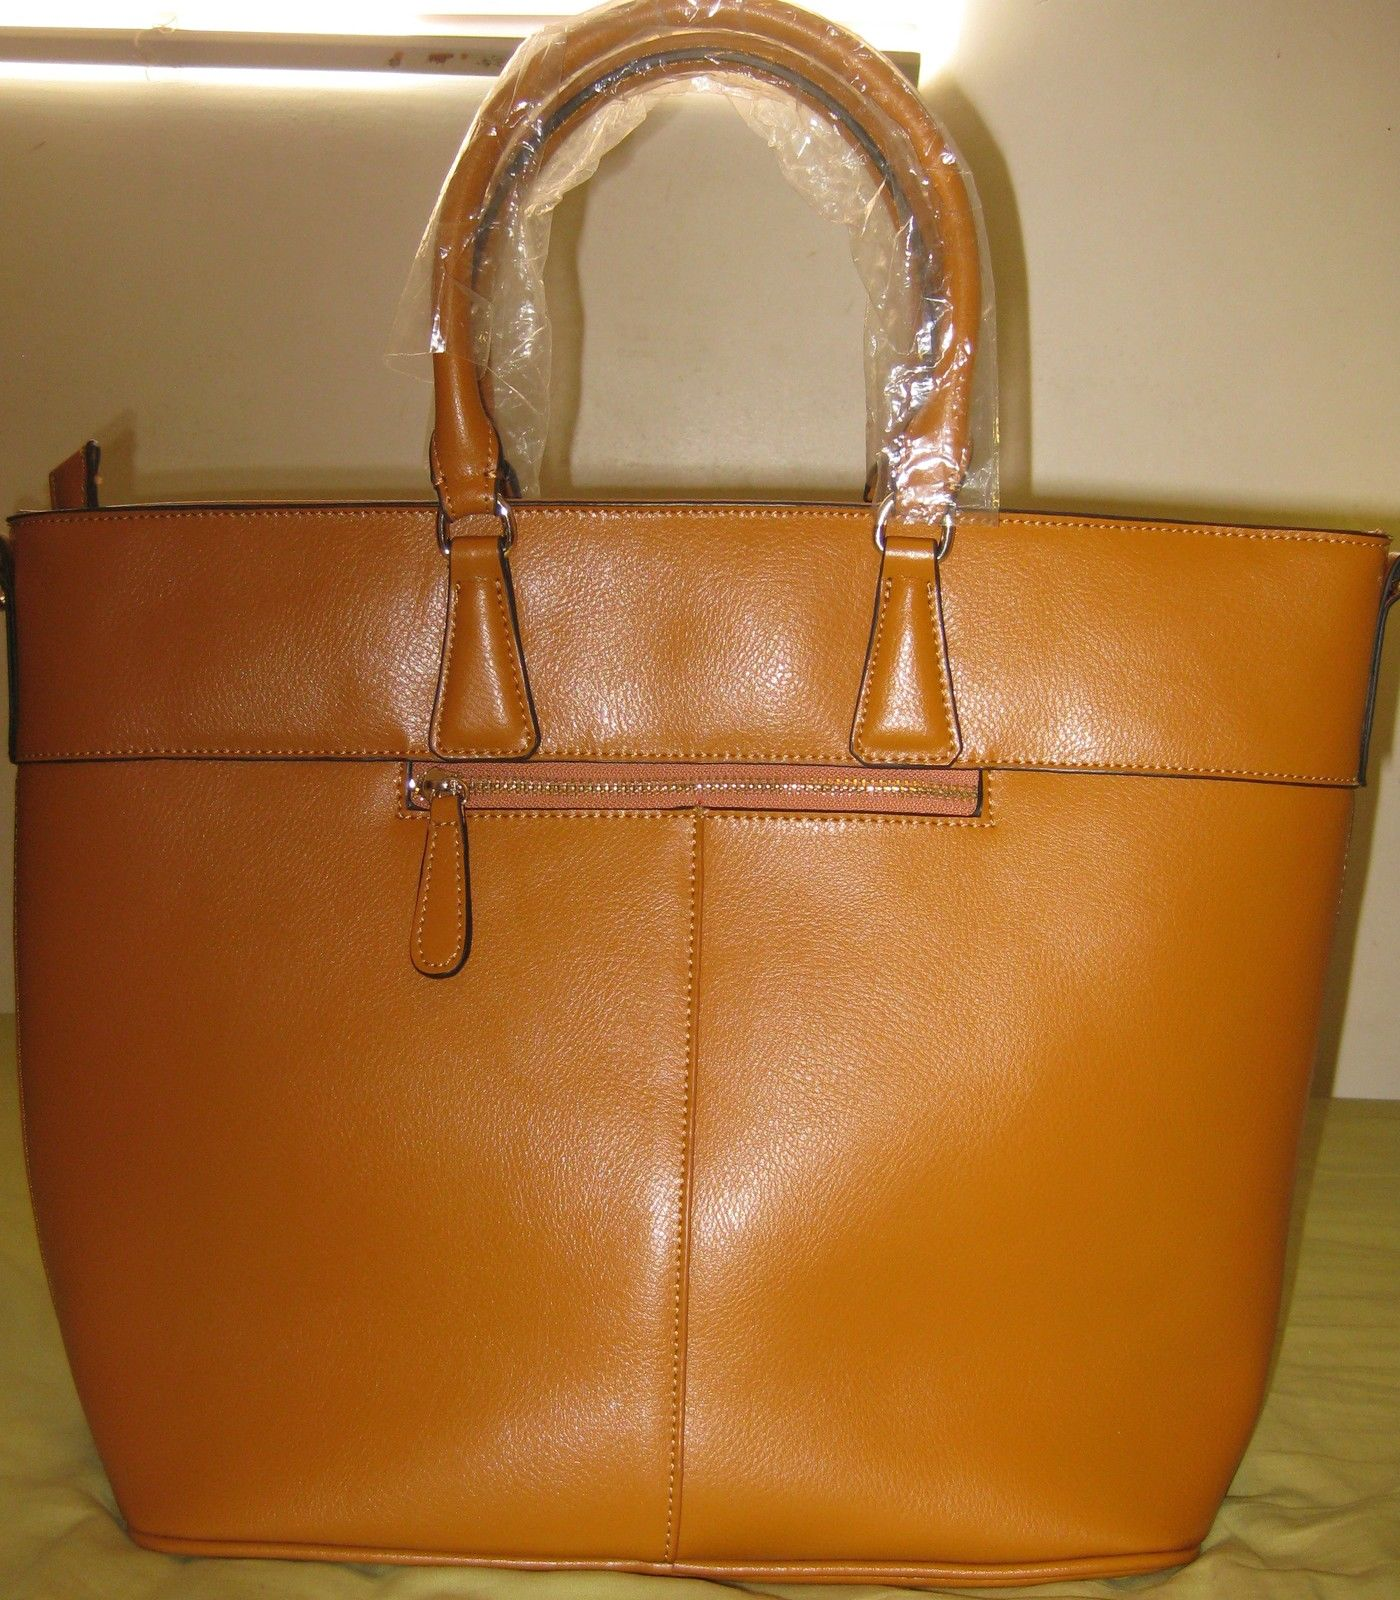 ITALIAN GENUINE NAPPA LEATHER HANDBAGS YELLOW BROWN